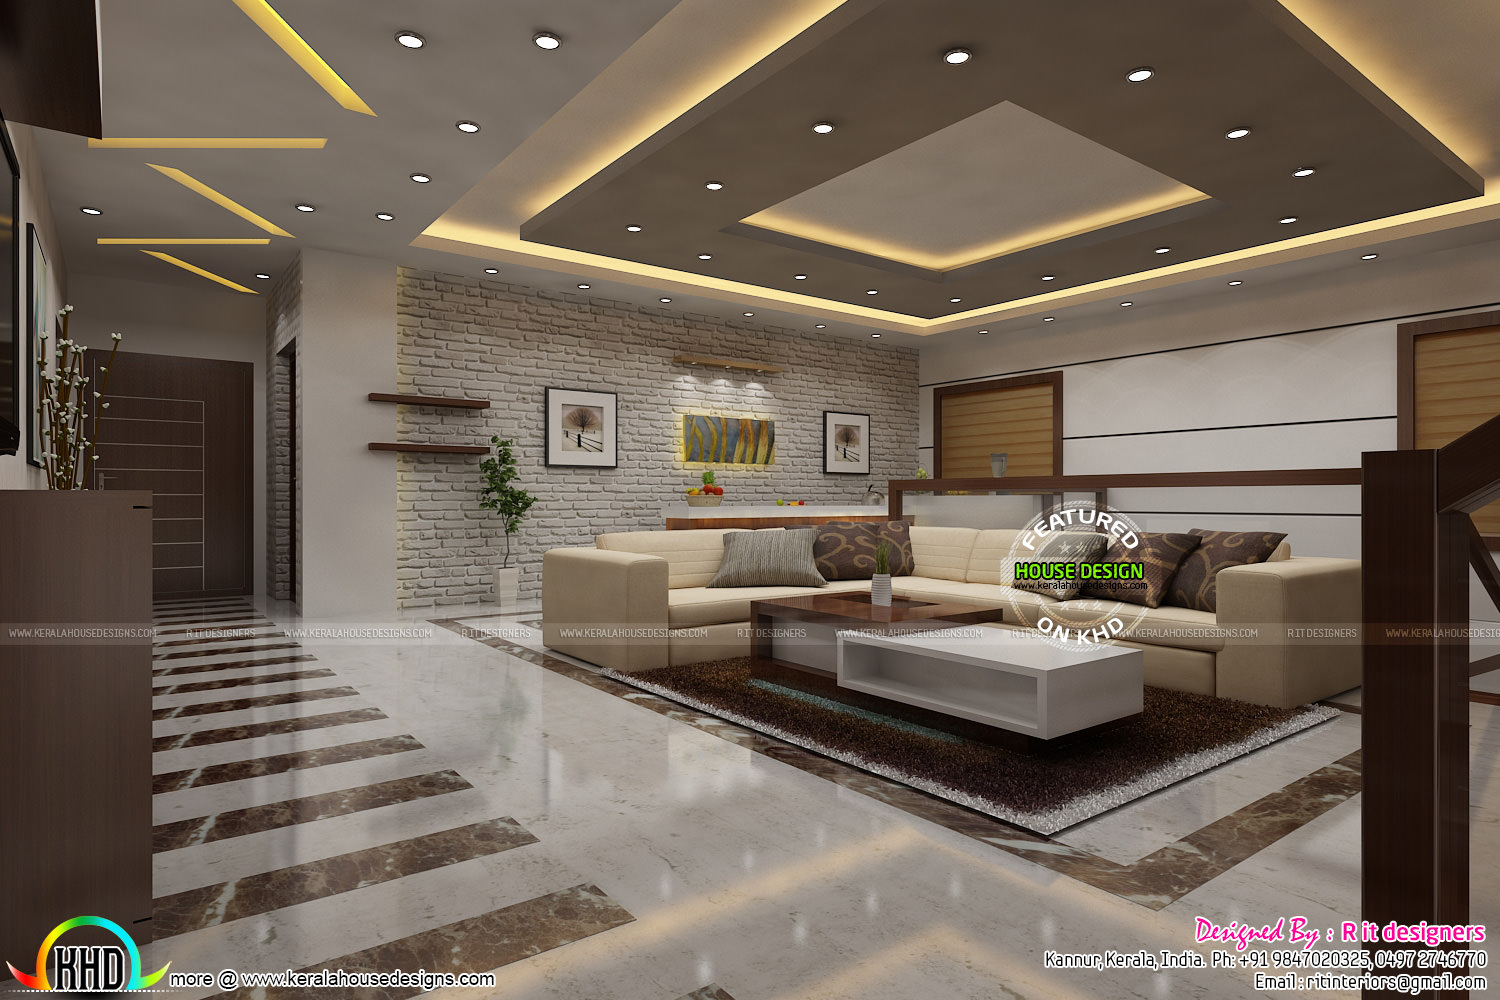 Most modern kerala living room interior kerala home for Kerala model interior designs